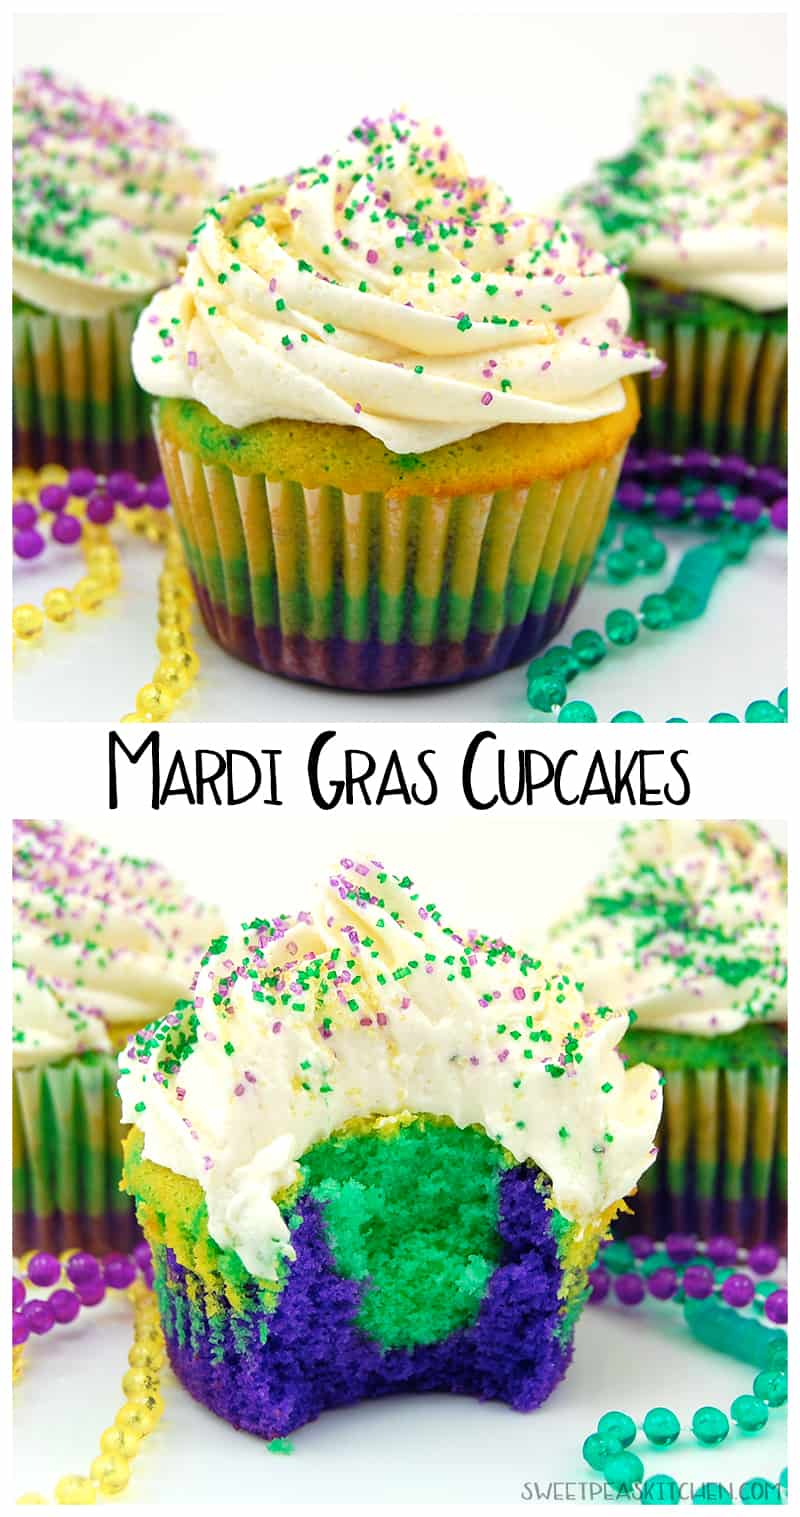 Mardi Gras Cupcakes collage